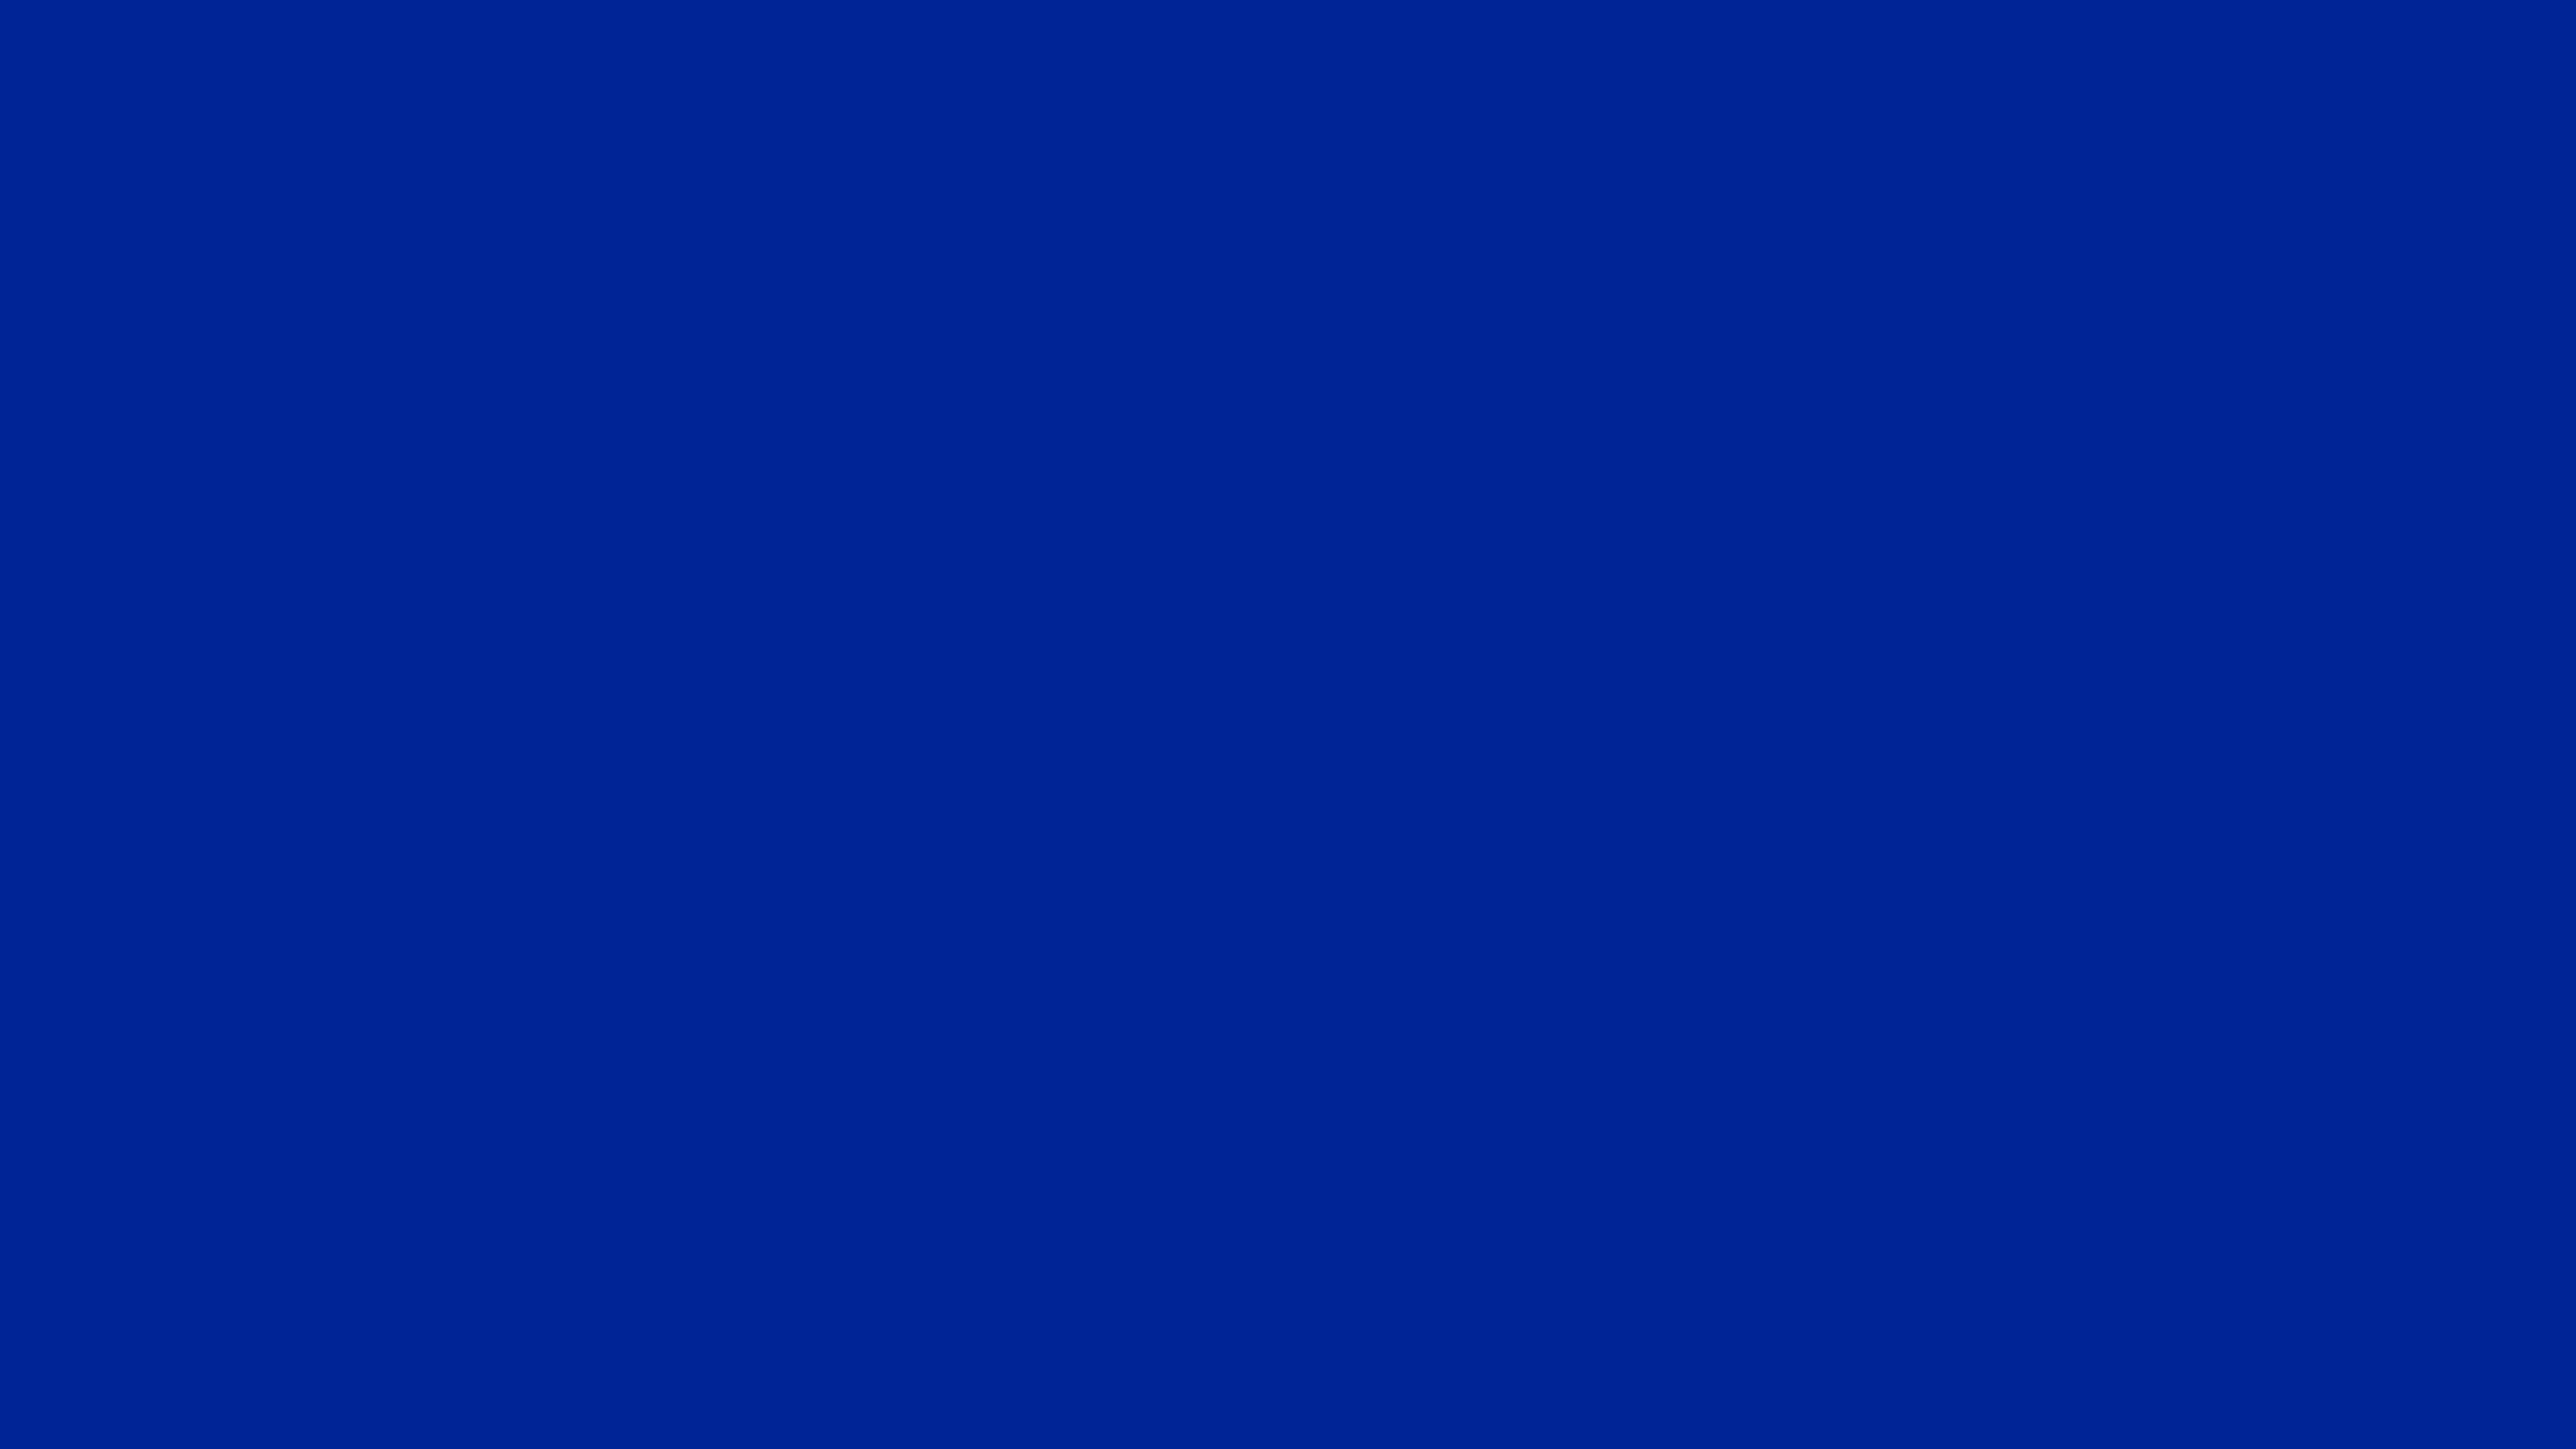 4096x2304 Imperial Blue Solid Color Background